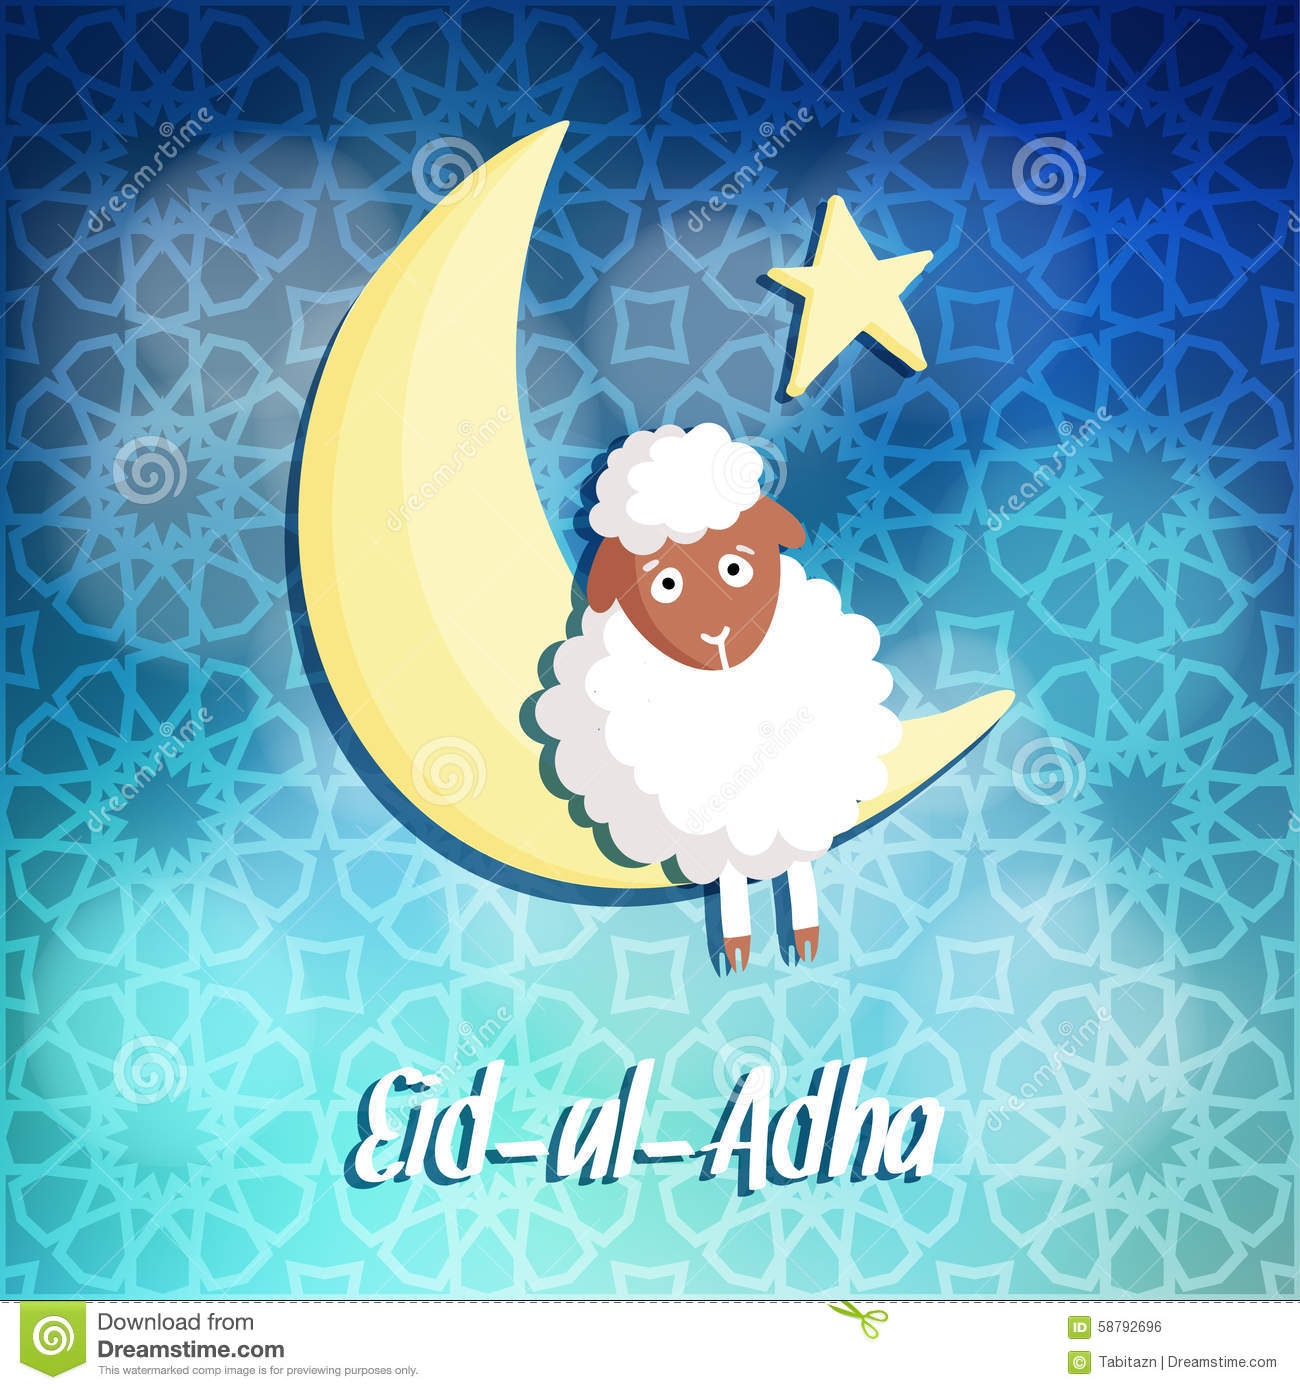 eid ul adha greeting card with sheep moon and star stock vector